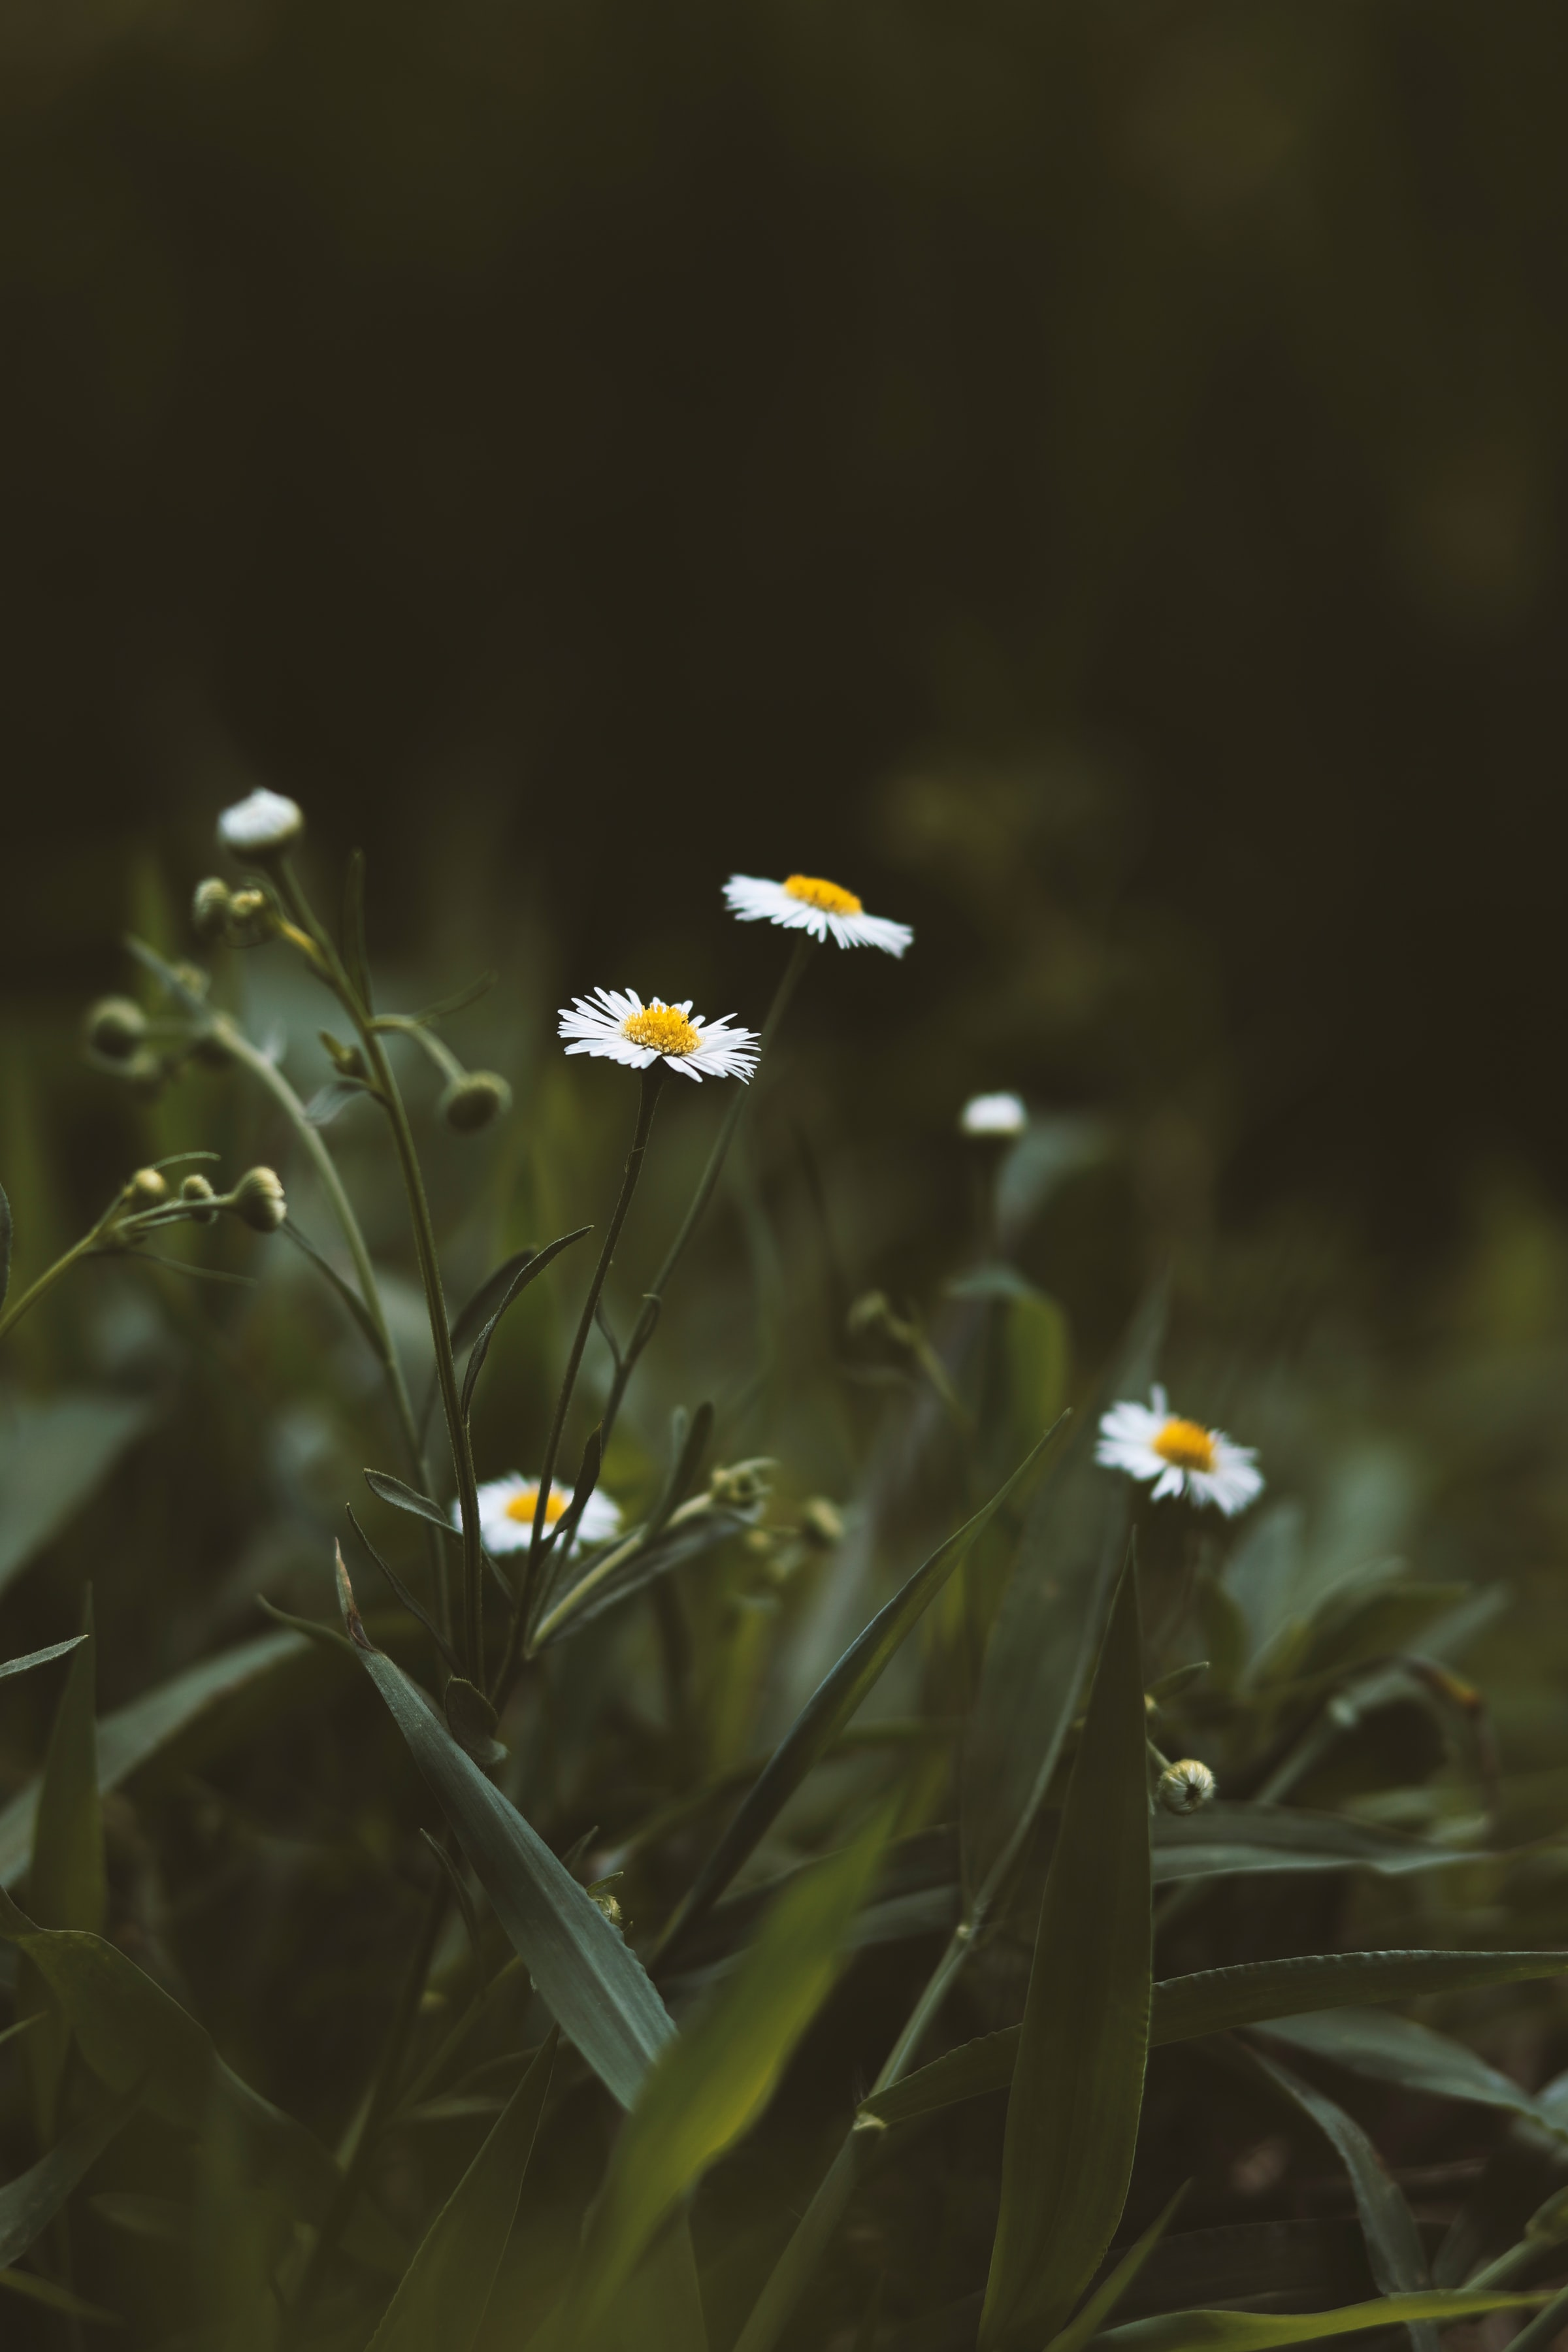 92352 download wallpaper Flowers, Chamomile, Camomile, Wildflowers, Grass screensavers and pictures for free